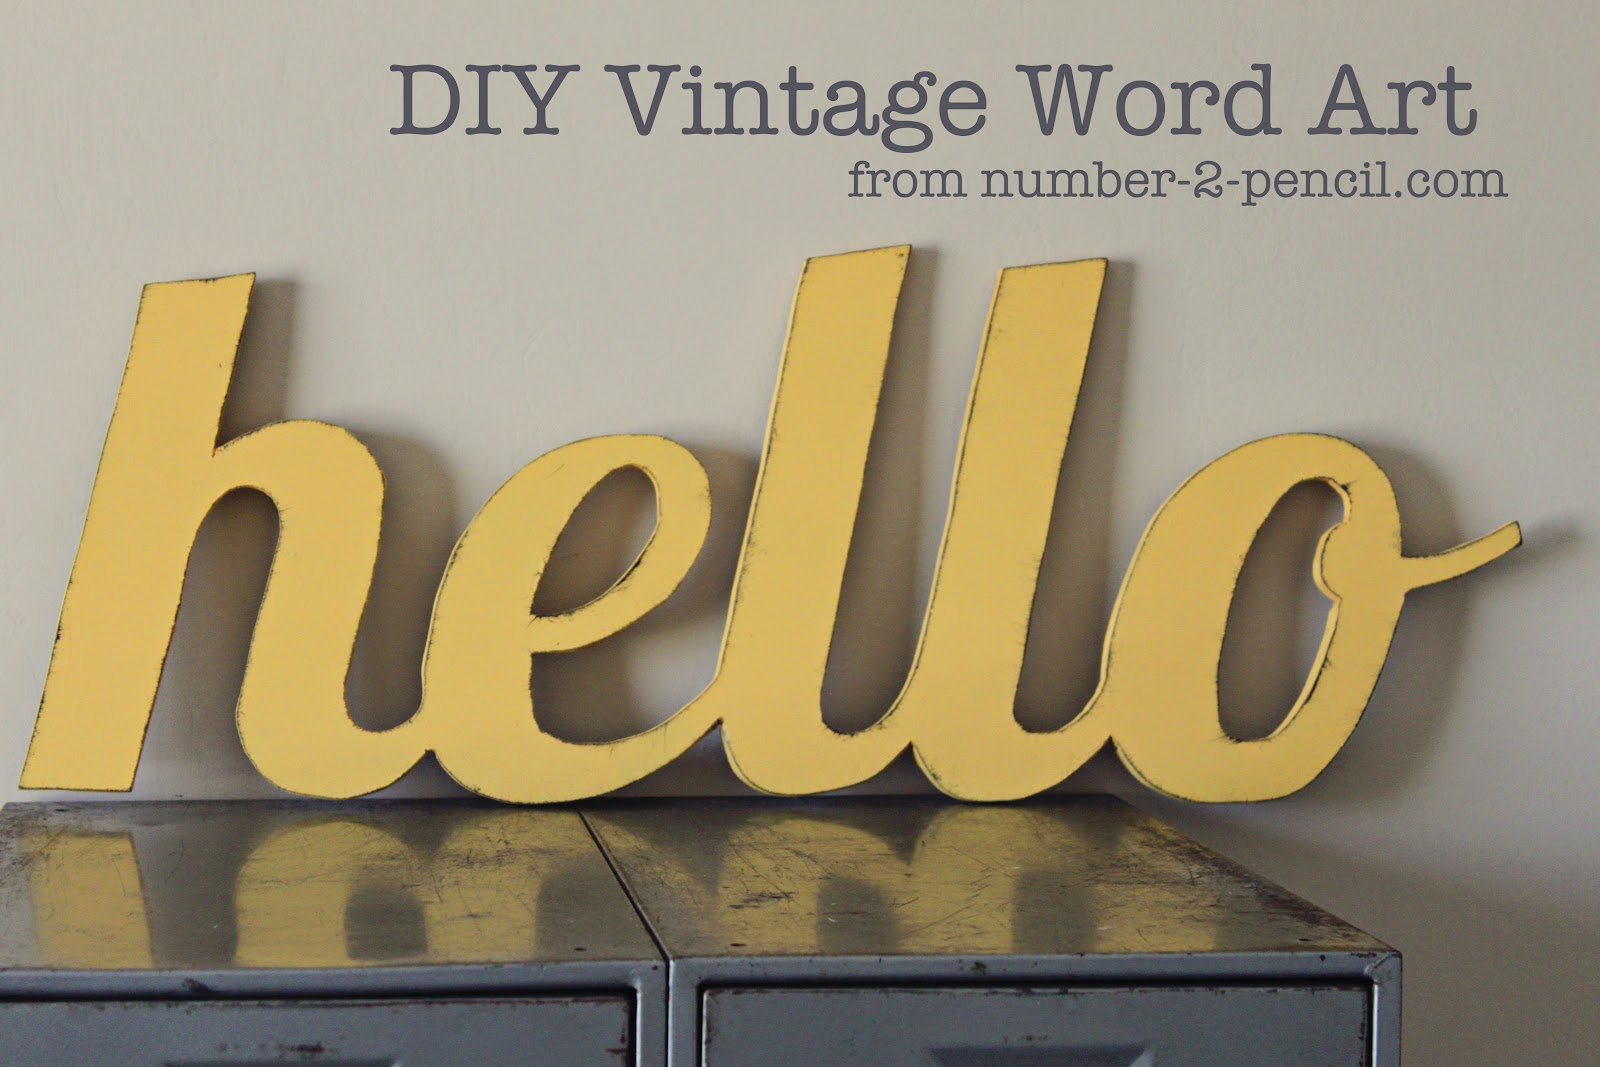 diy vintage word art no 2 pencil